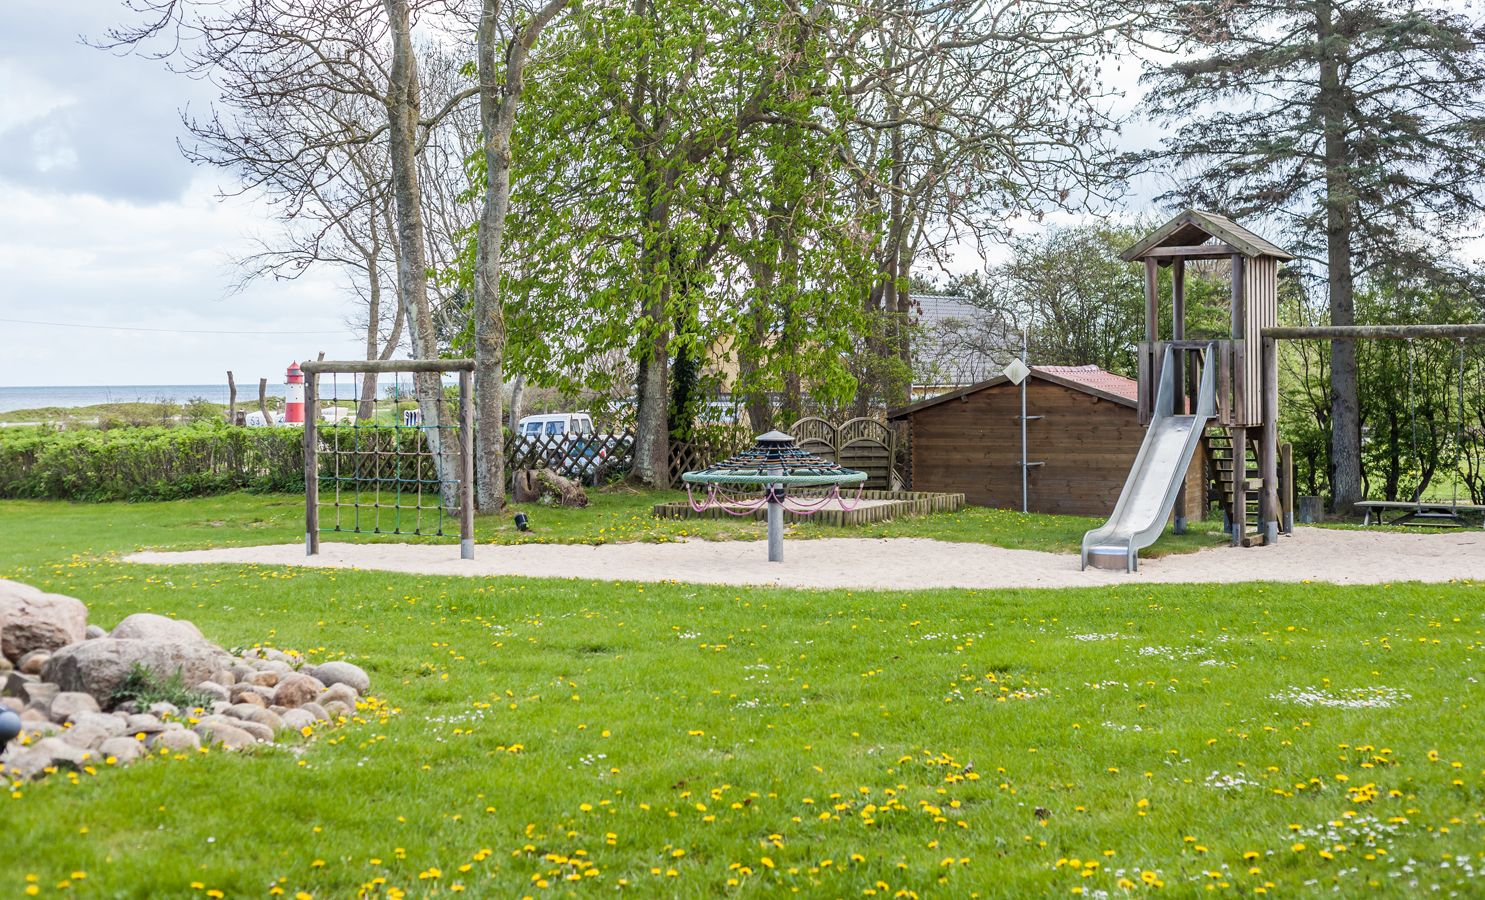 Traumhafter Kinderstrand in Kronsgaard